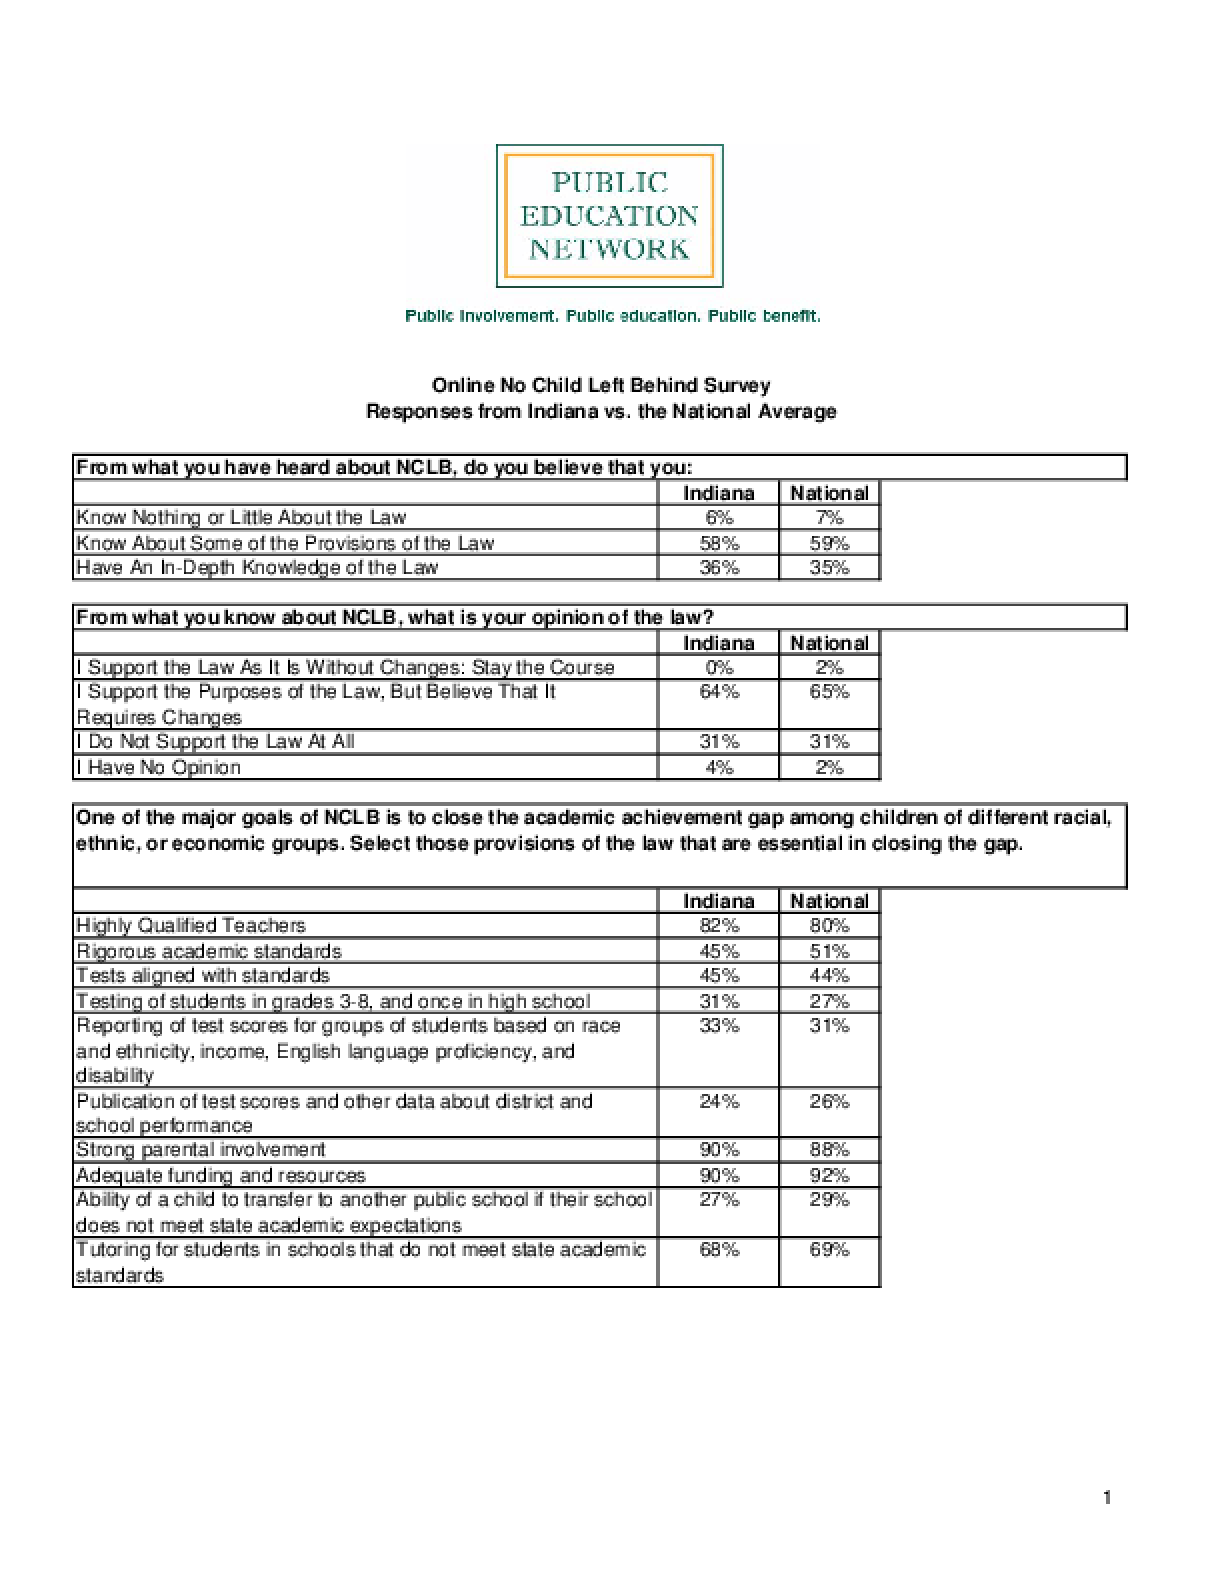 Online No Child Left Behind Survey Responses from Indiana vs. the National Average